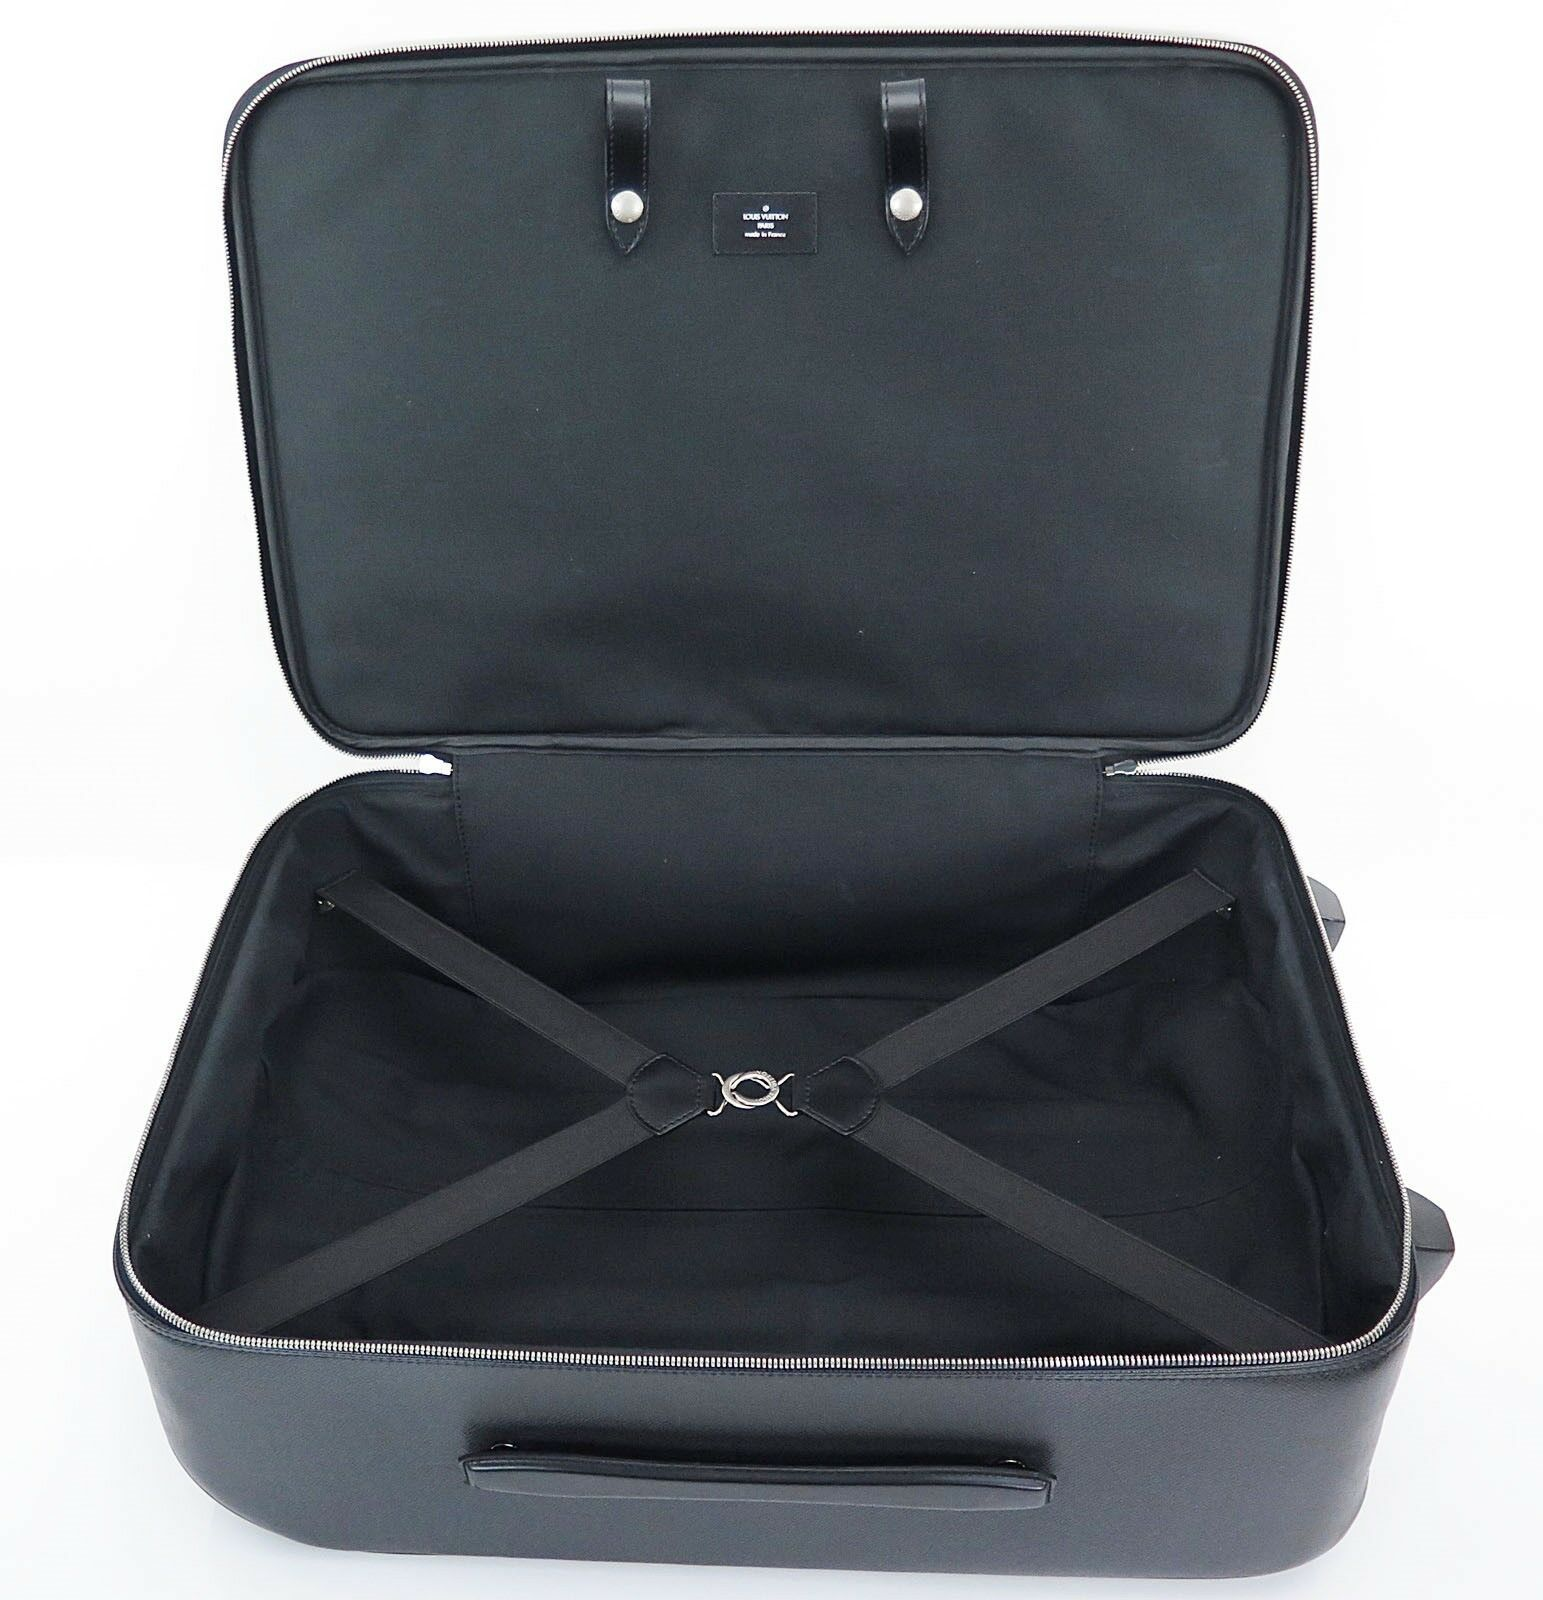 Auth LOUIS VUITTON Pegase 55 Black Taiga Leather Travel Rolling Suitcase #30258